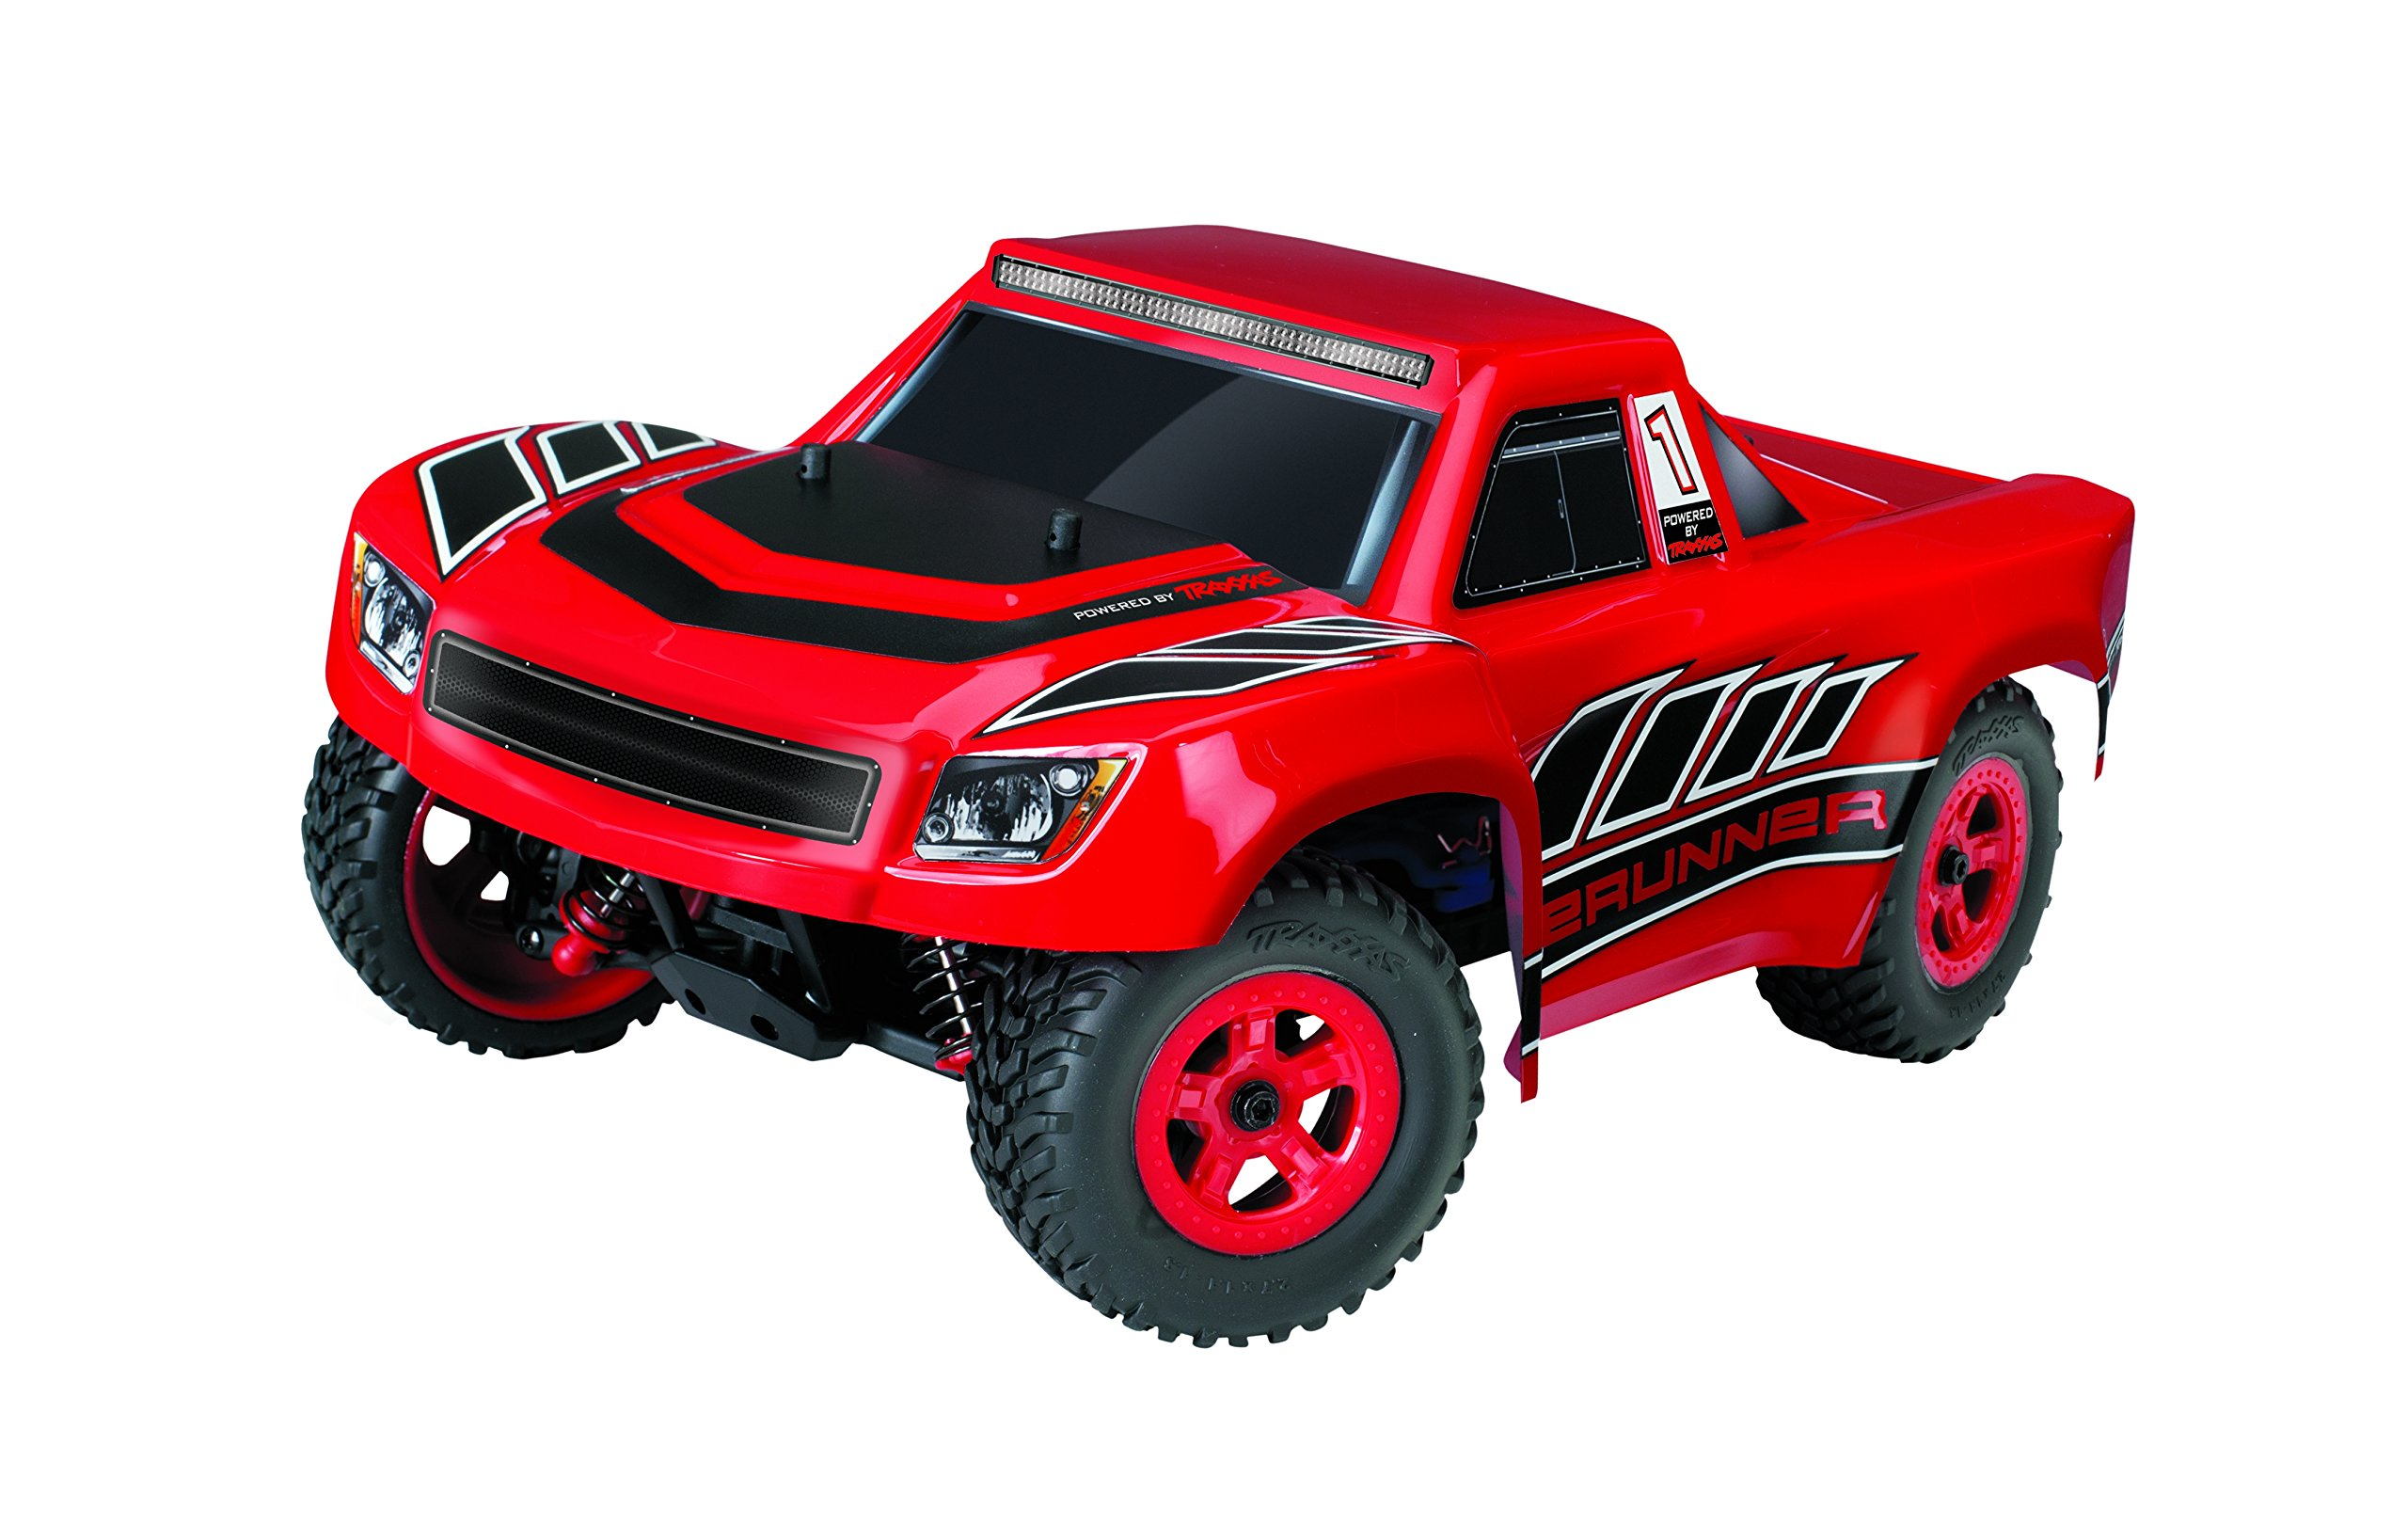 Traxxas LaTrax Electric 4WD Desert Prerunner Remote Control Race Truck with 2.4GHz Radio (1/18 Scale), Red